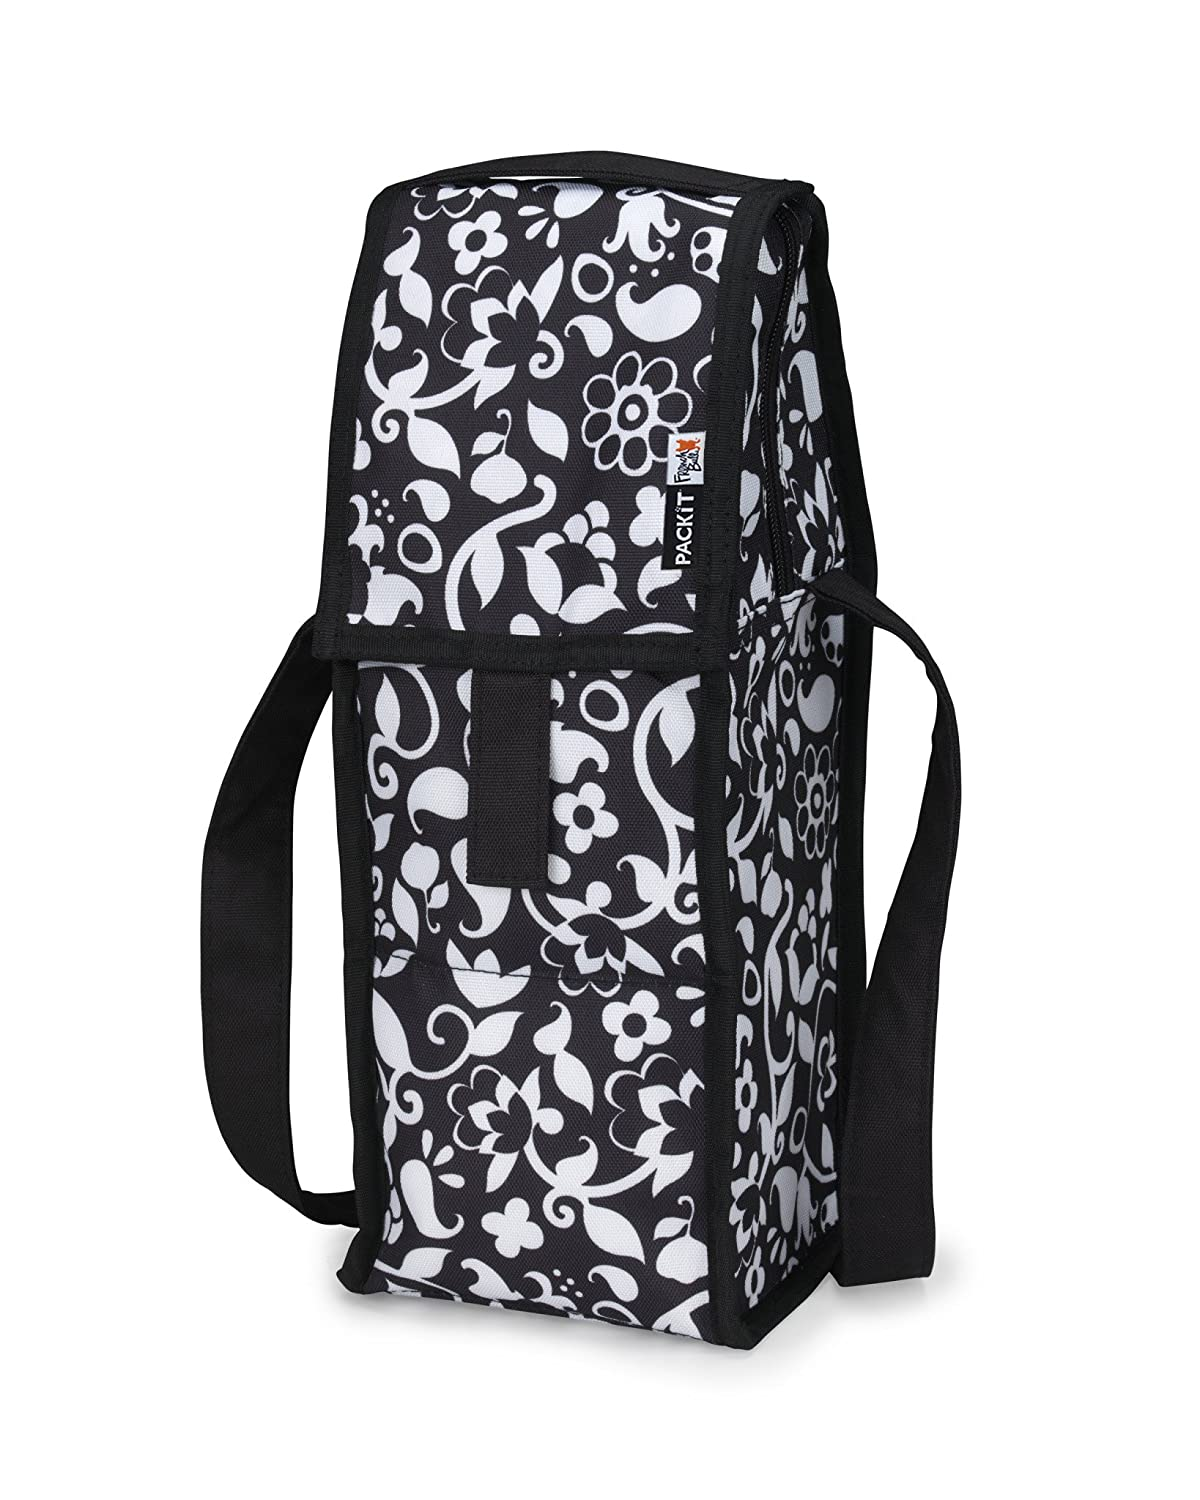 PackIt Freezable Wine Cooler Bag with Zip Closure, Solid Black SBS-BK-1018